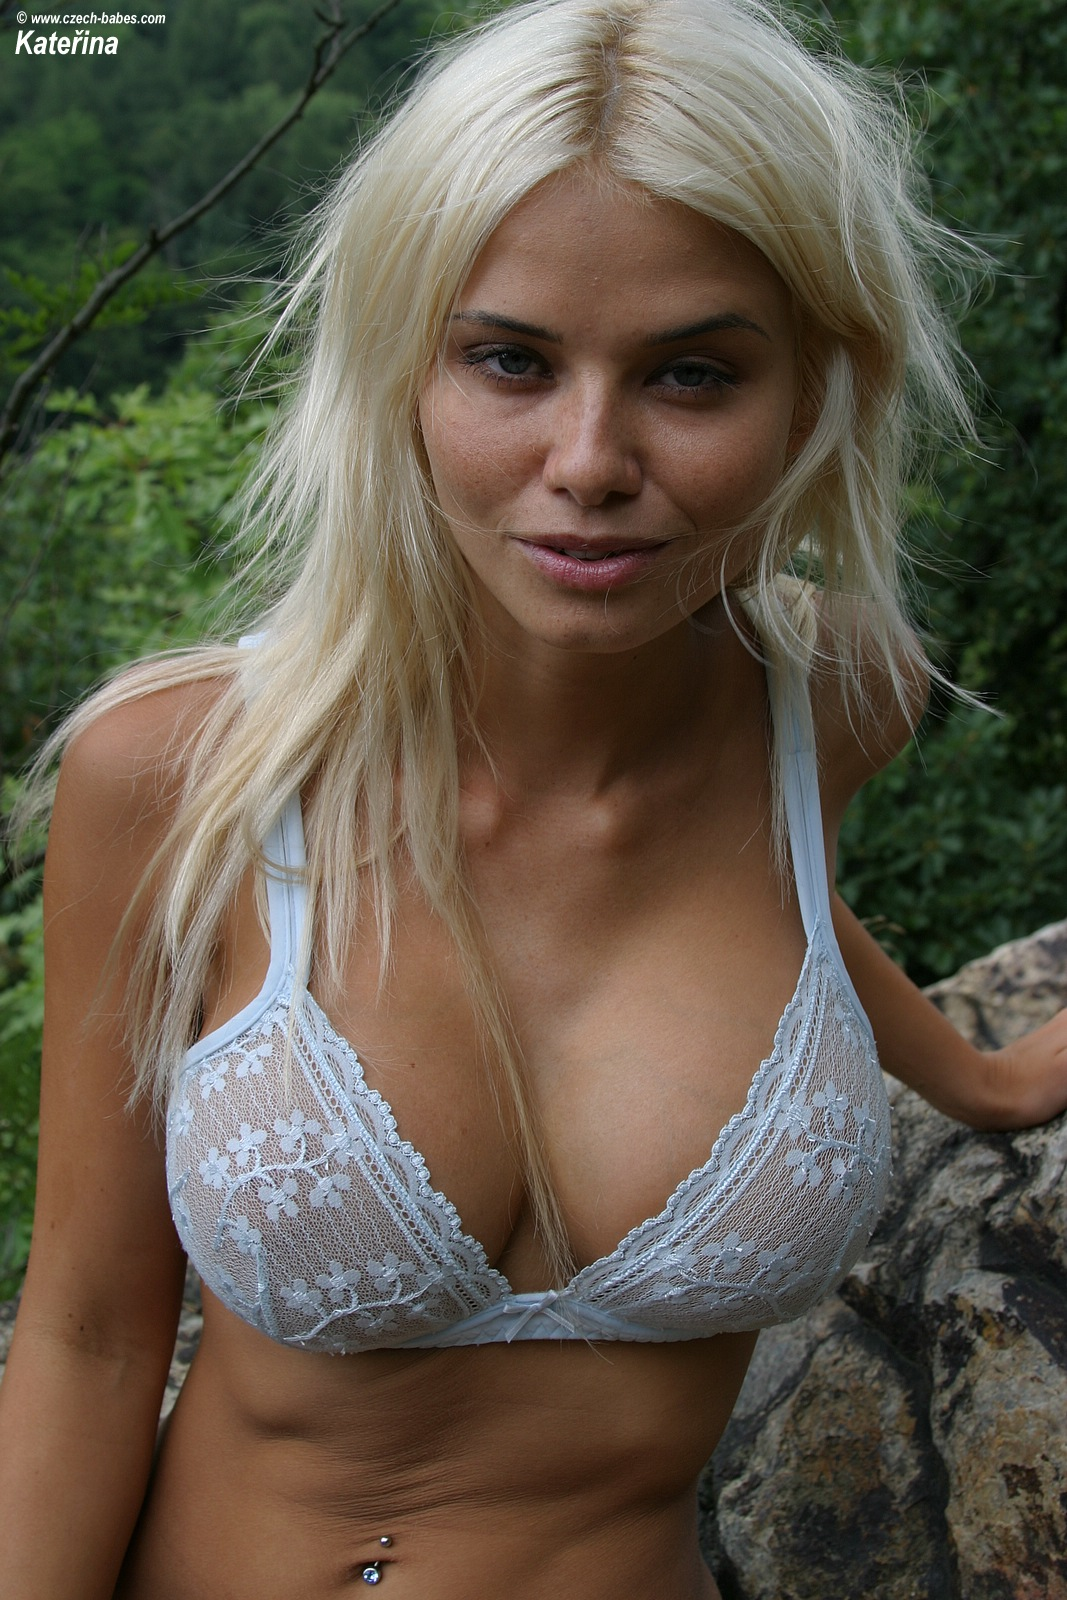 katerina-nude-mountain-lingerie-huge-tits-blonde-05